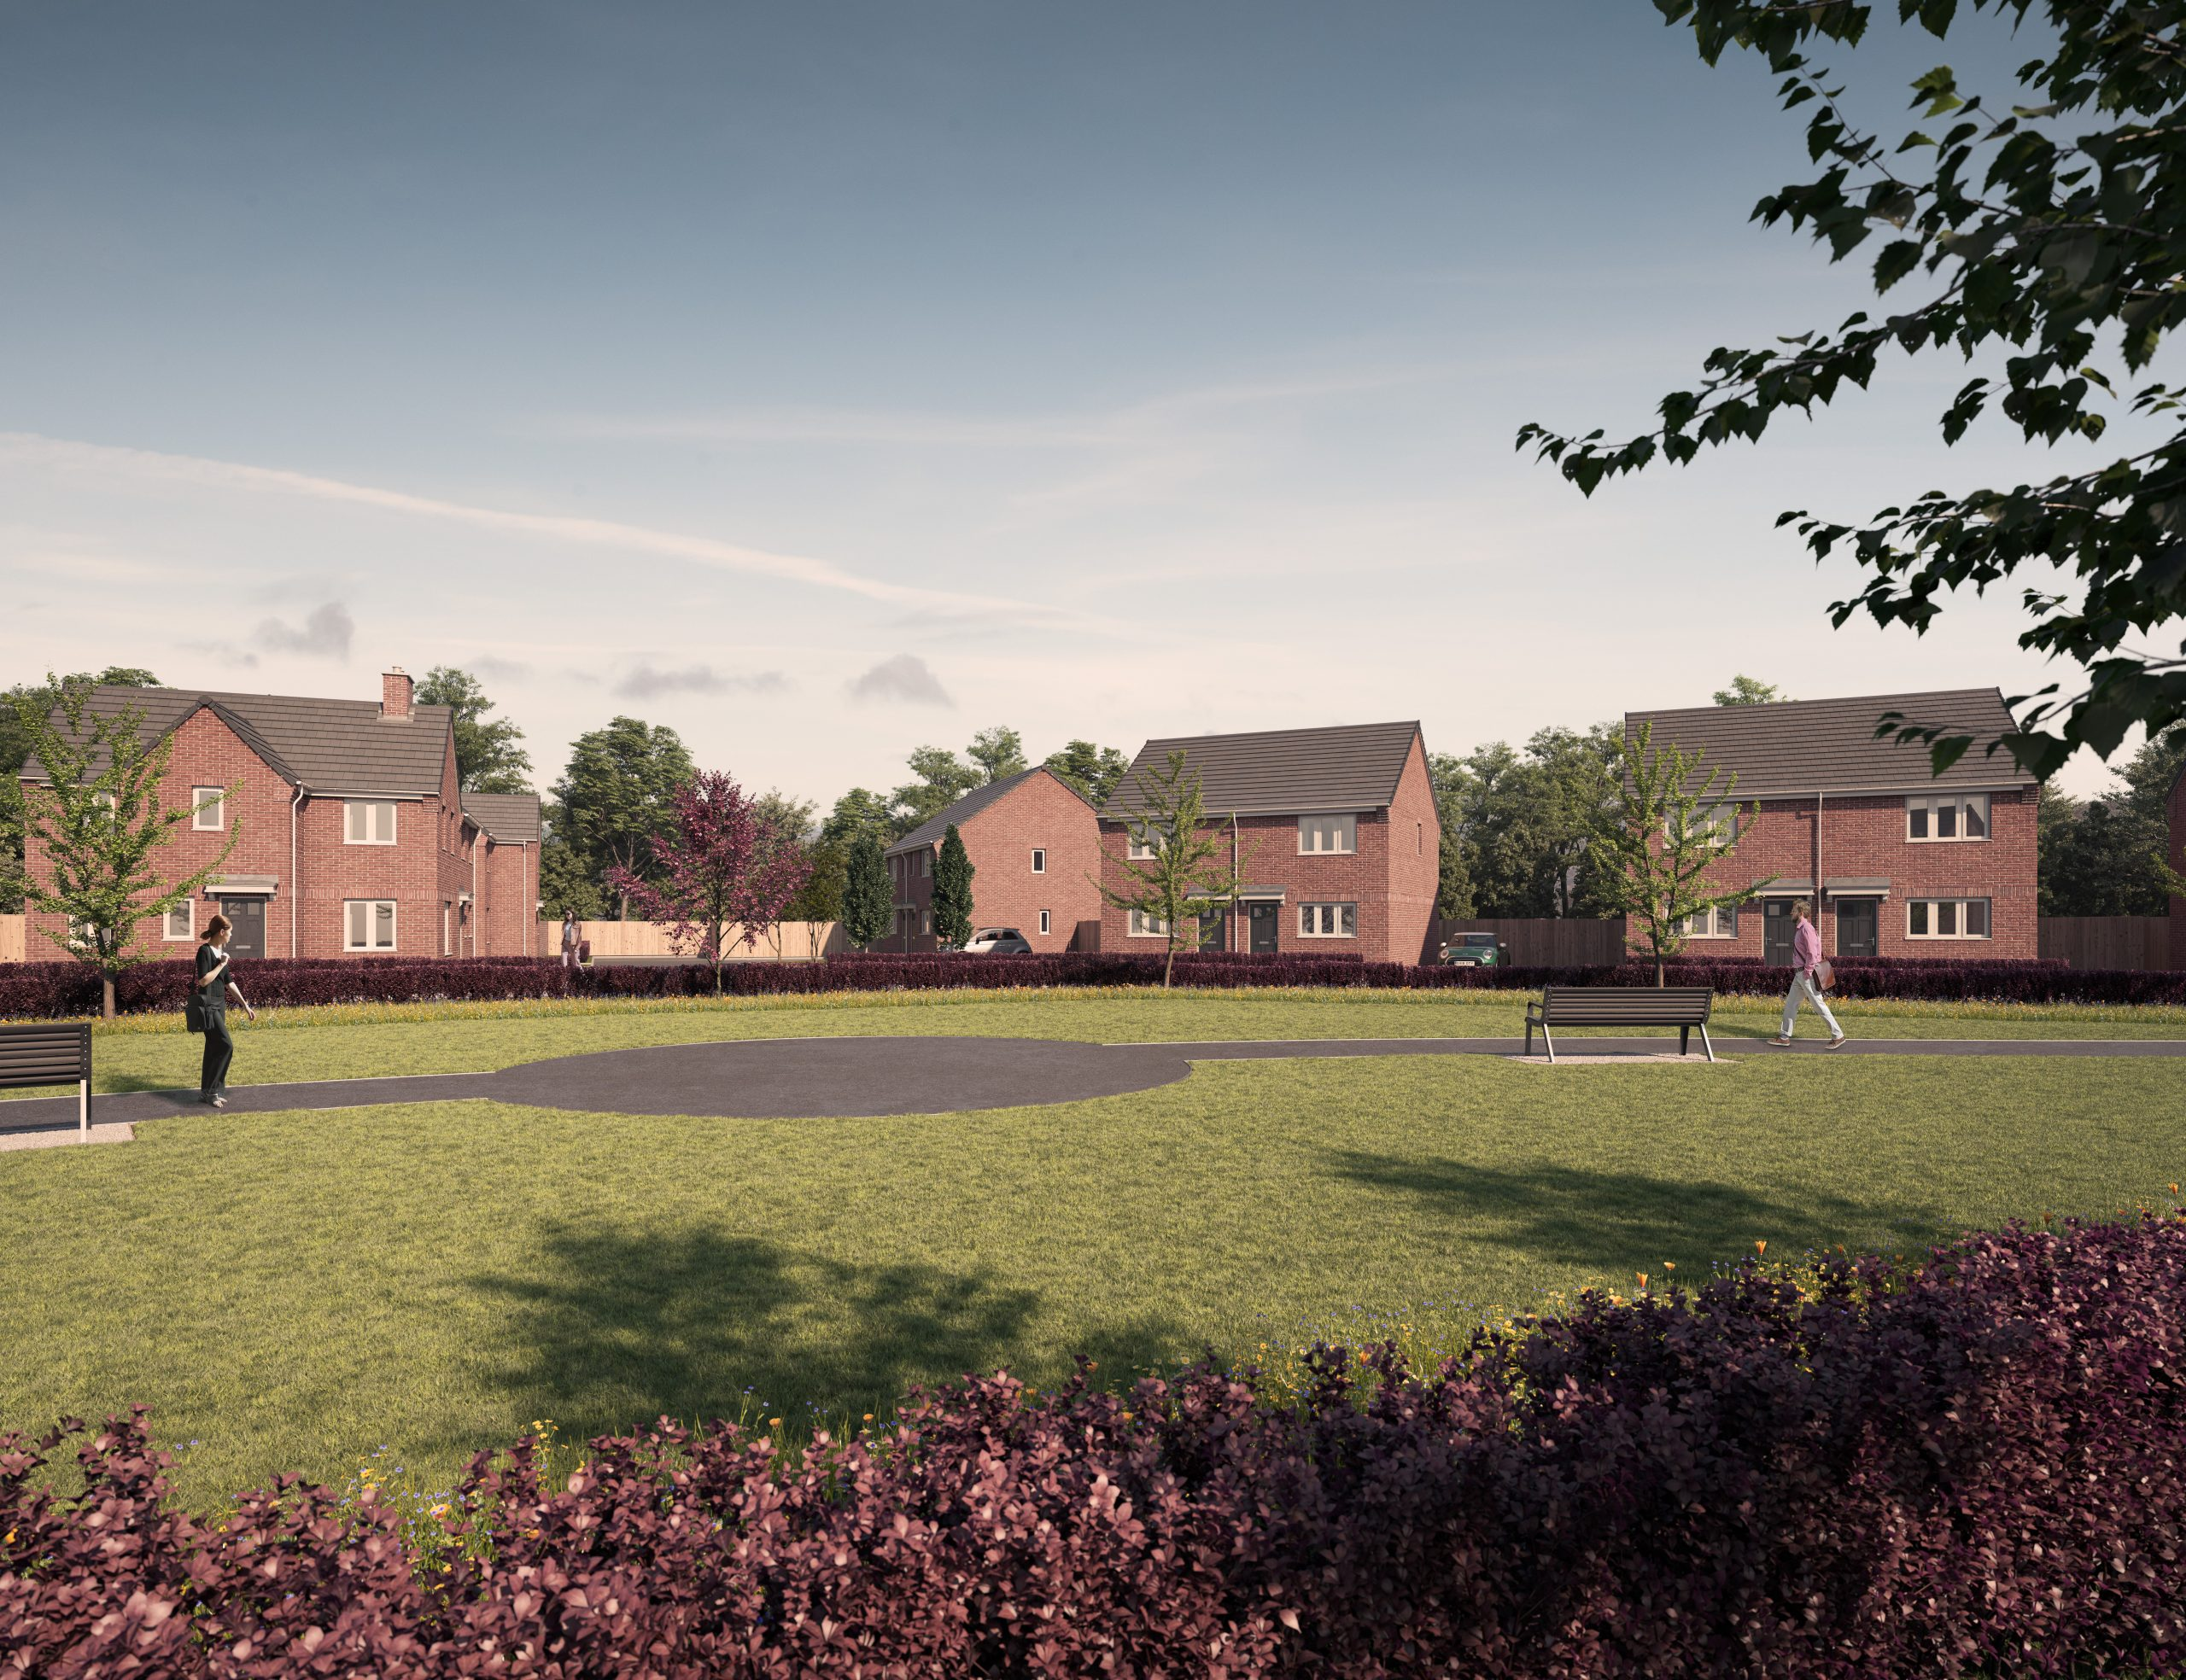 Affordable Housing Development Coming to Leeds